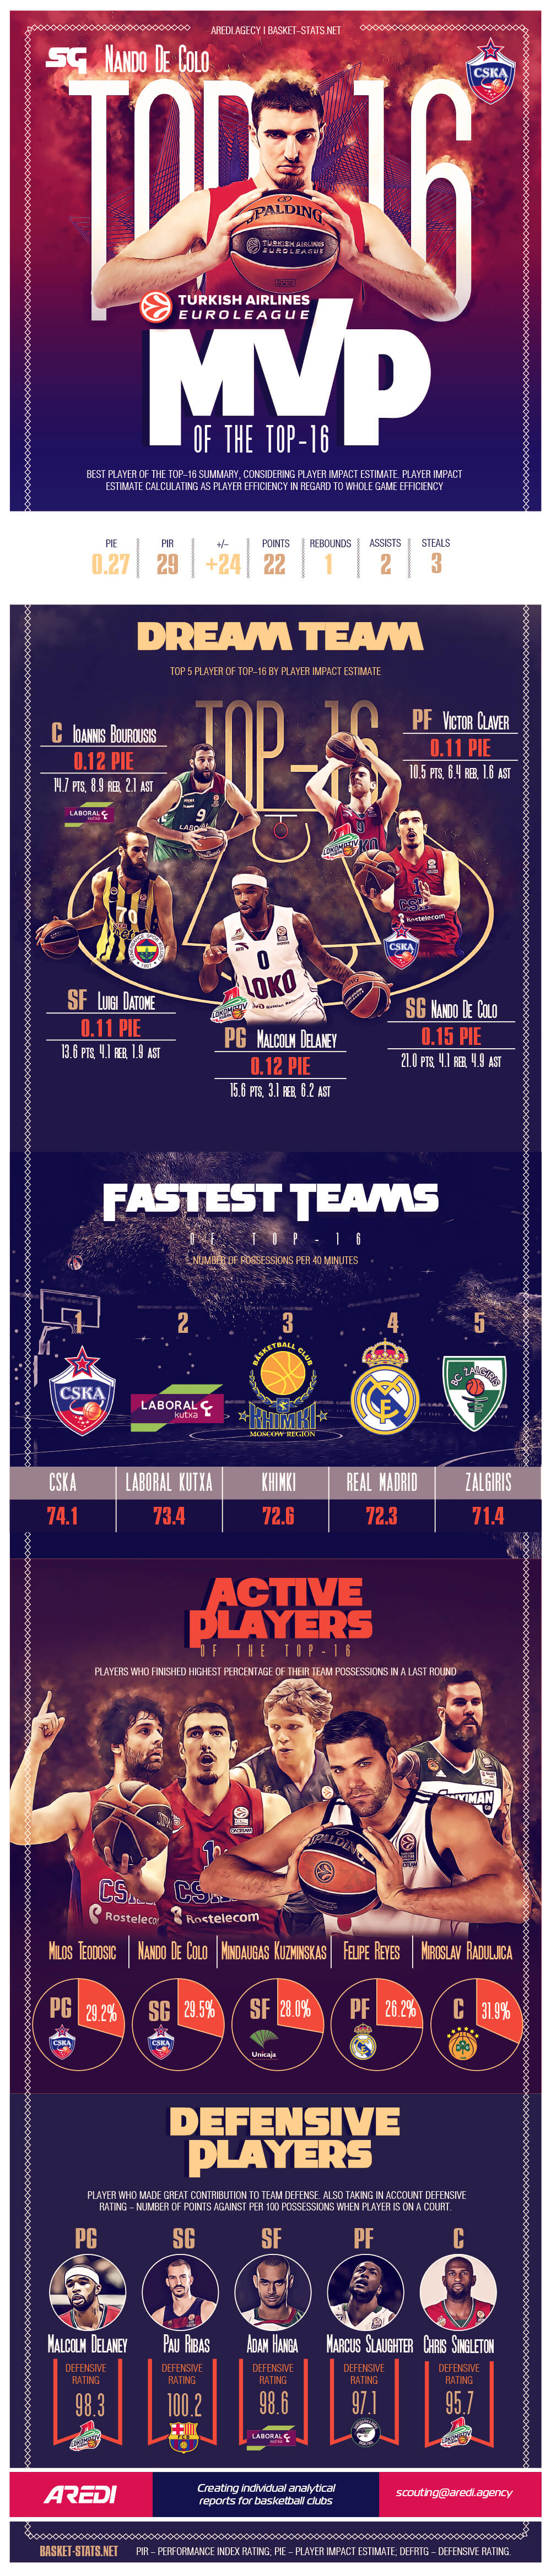 Turkish Airlines Euroleague Top 16. Season stats